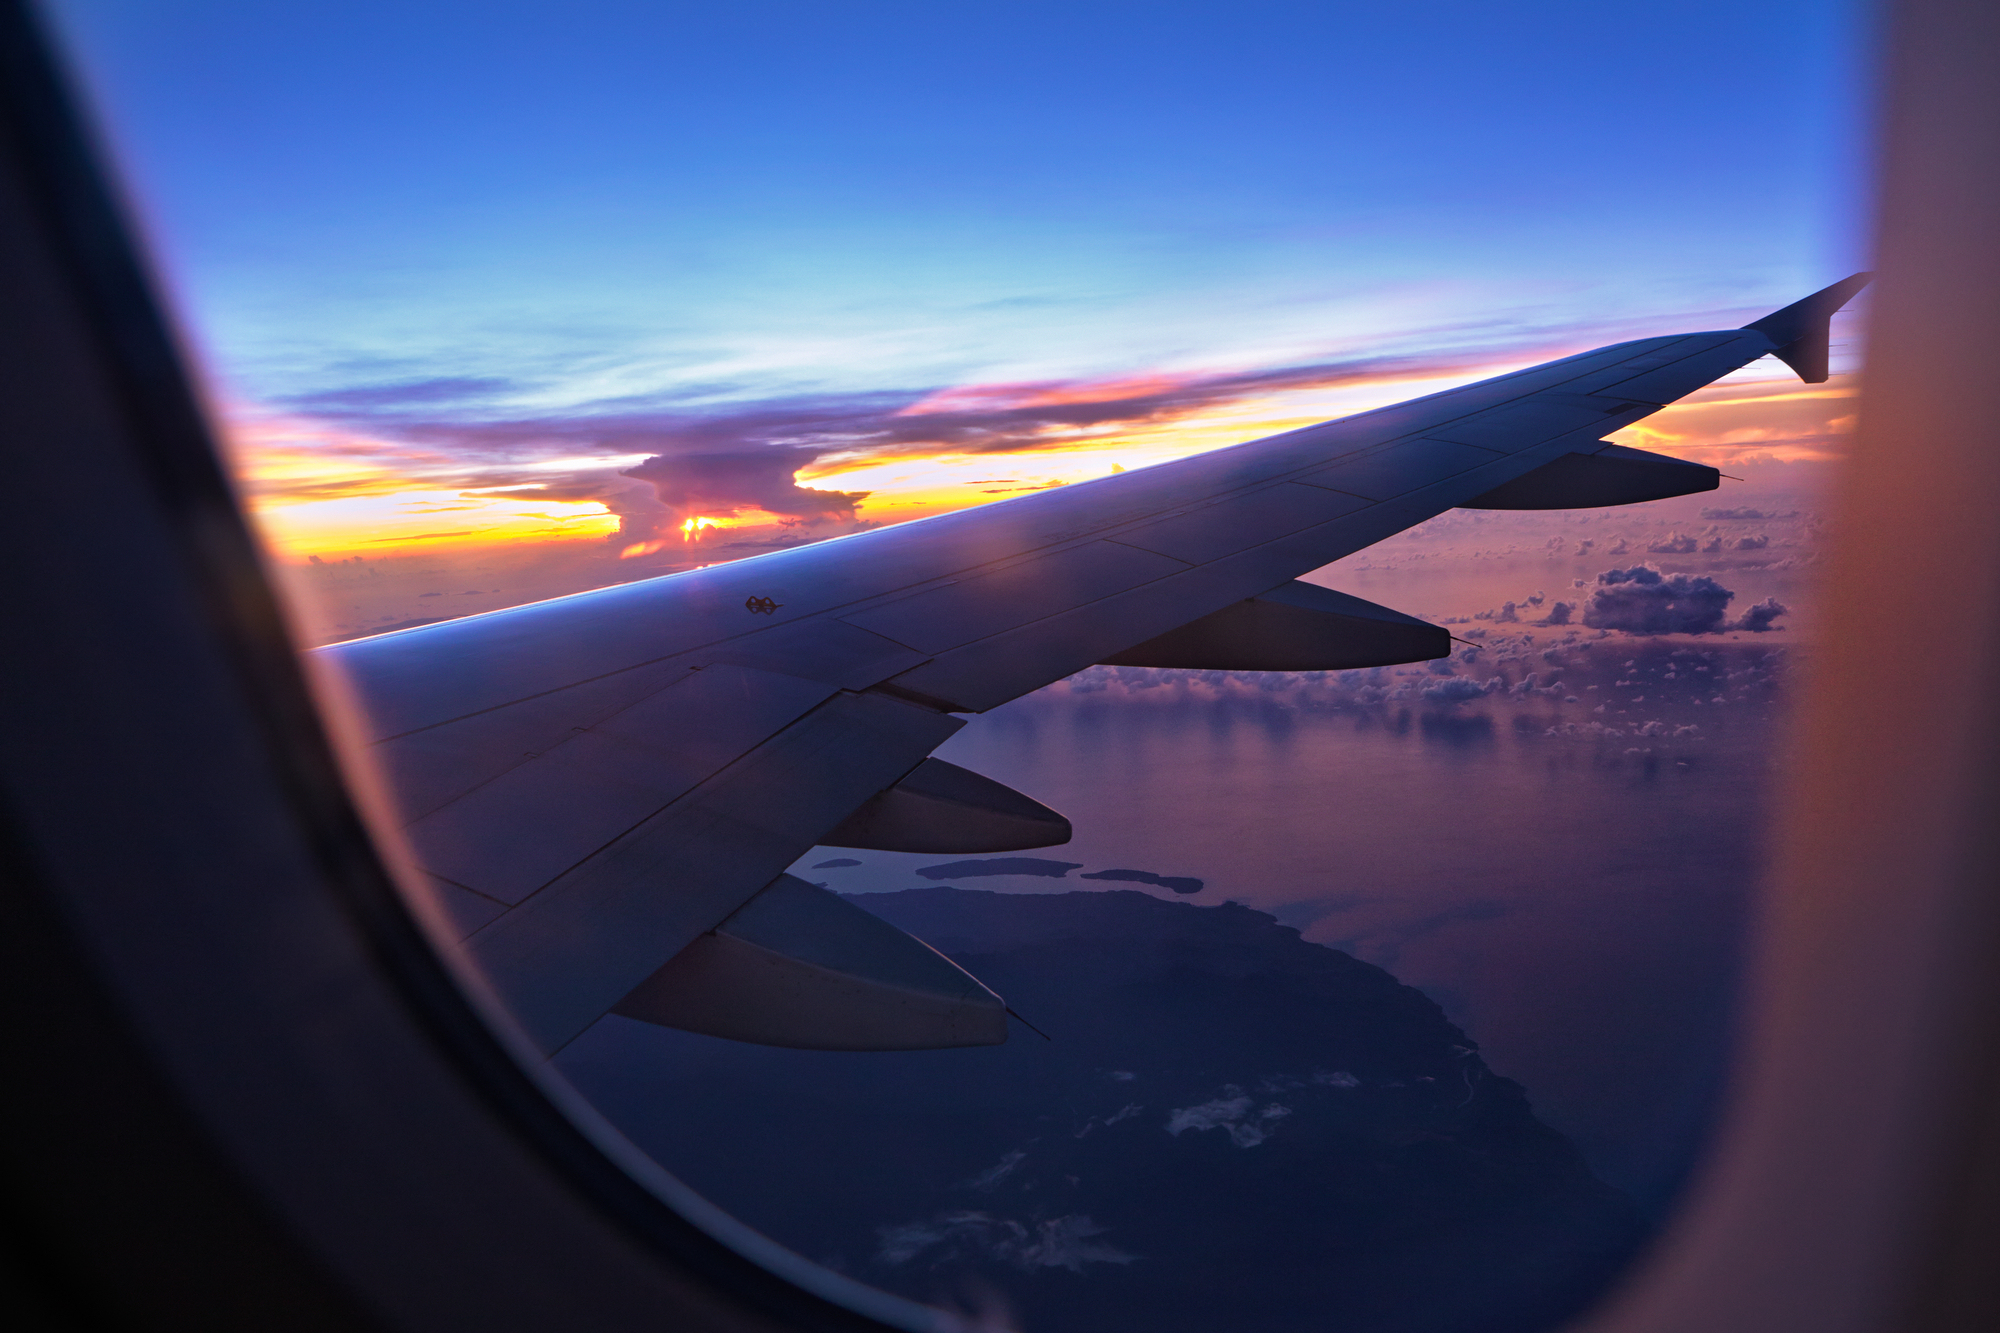 A sunset over the wing of a plane viewed from the plane's window. Below, a coastline and sporadic clouds are visible.